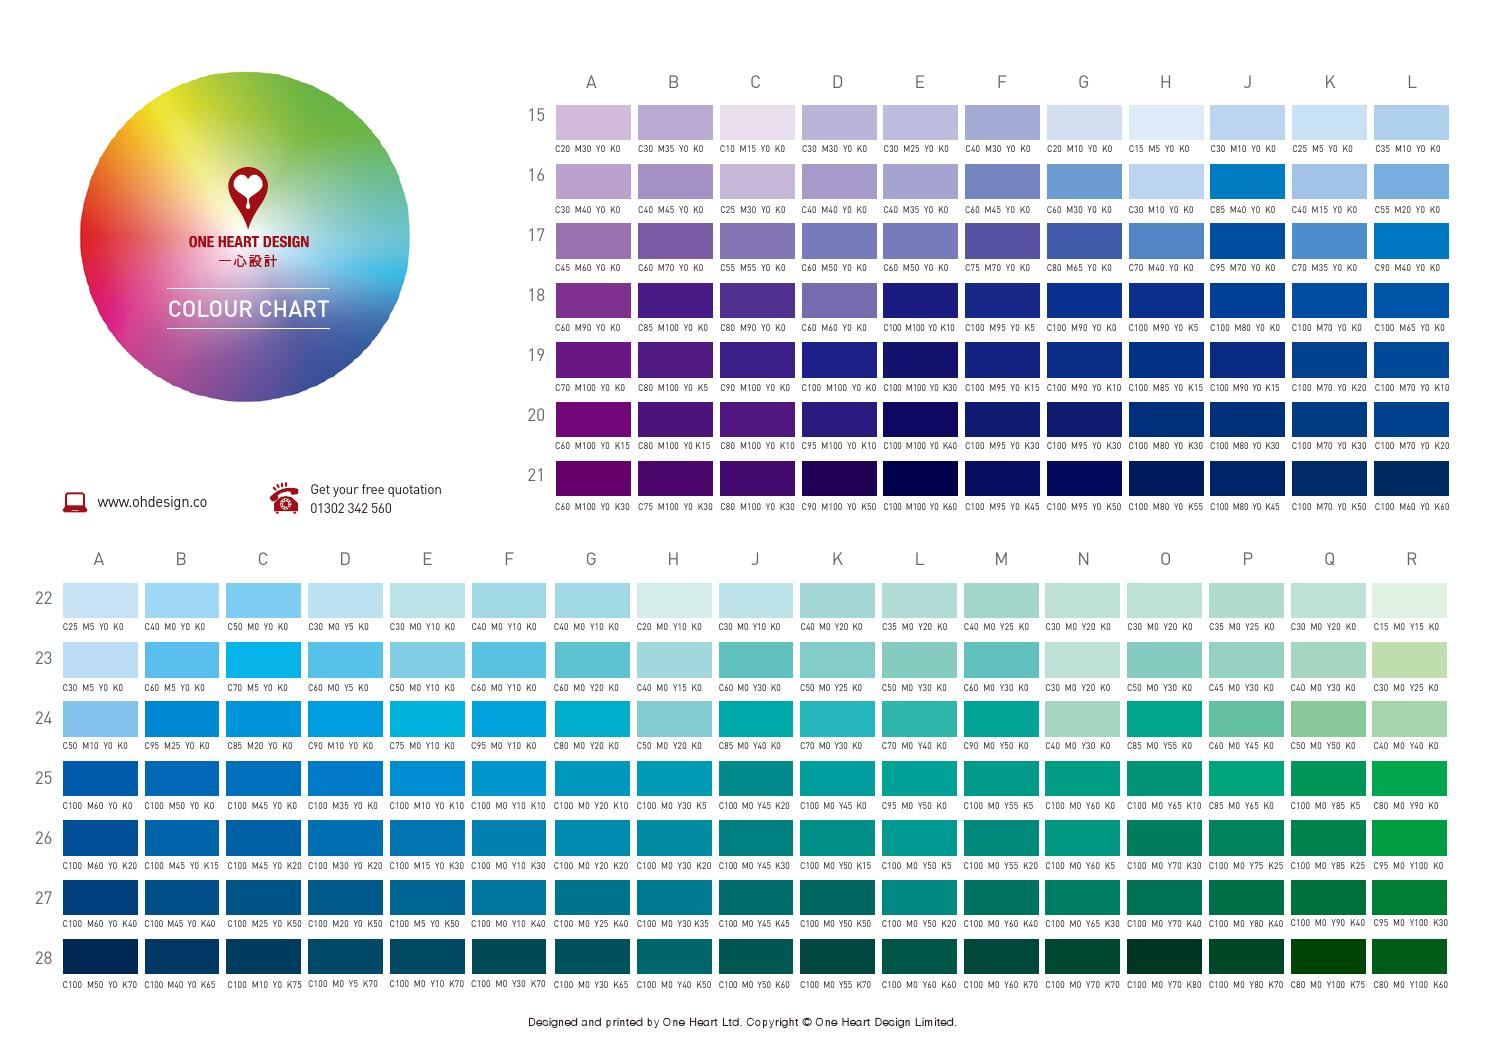 One Heart Design Colour Chart By page 2